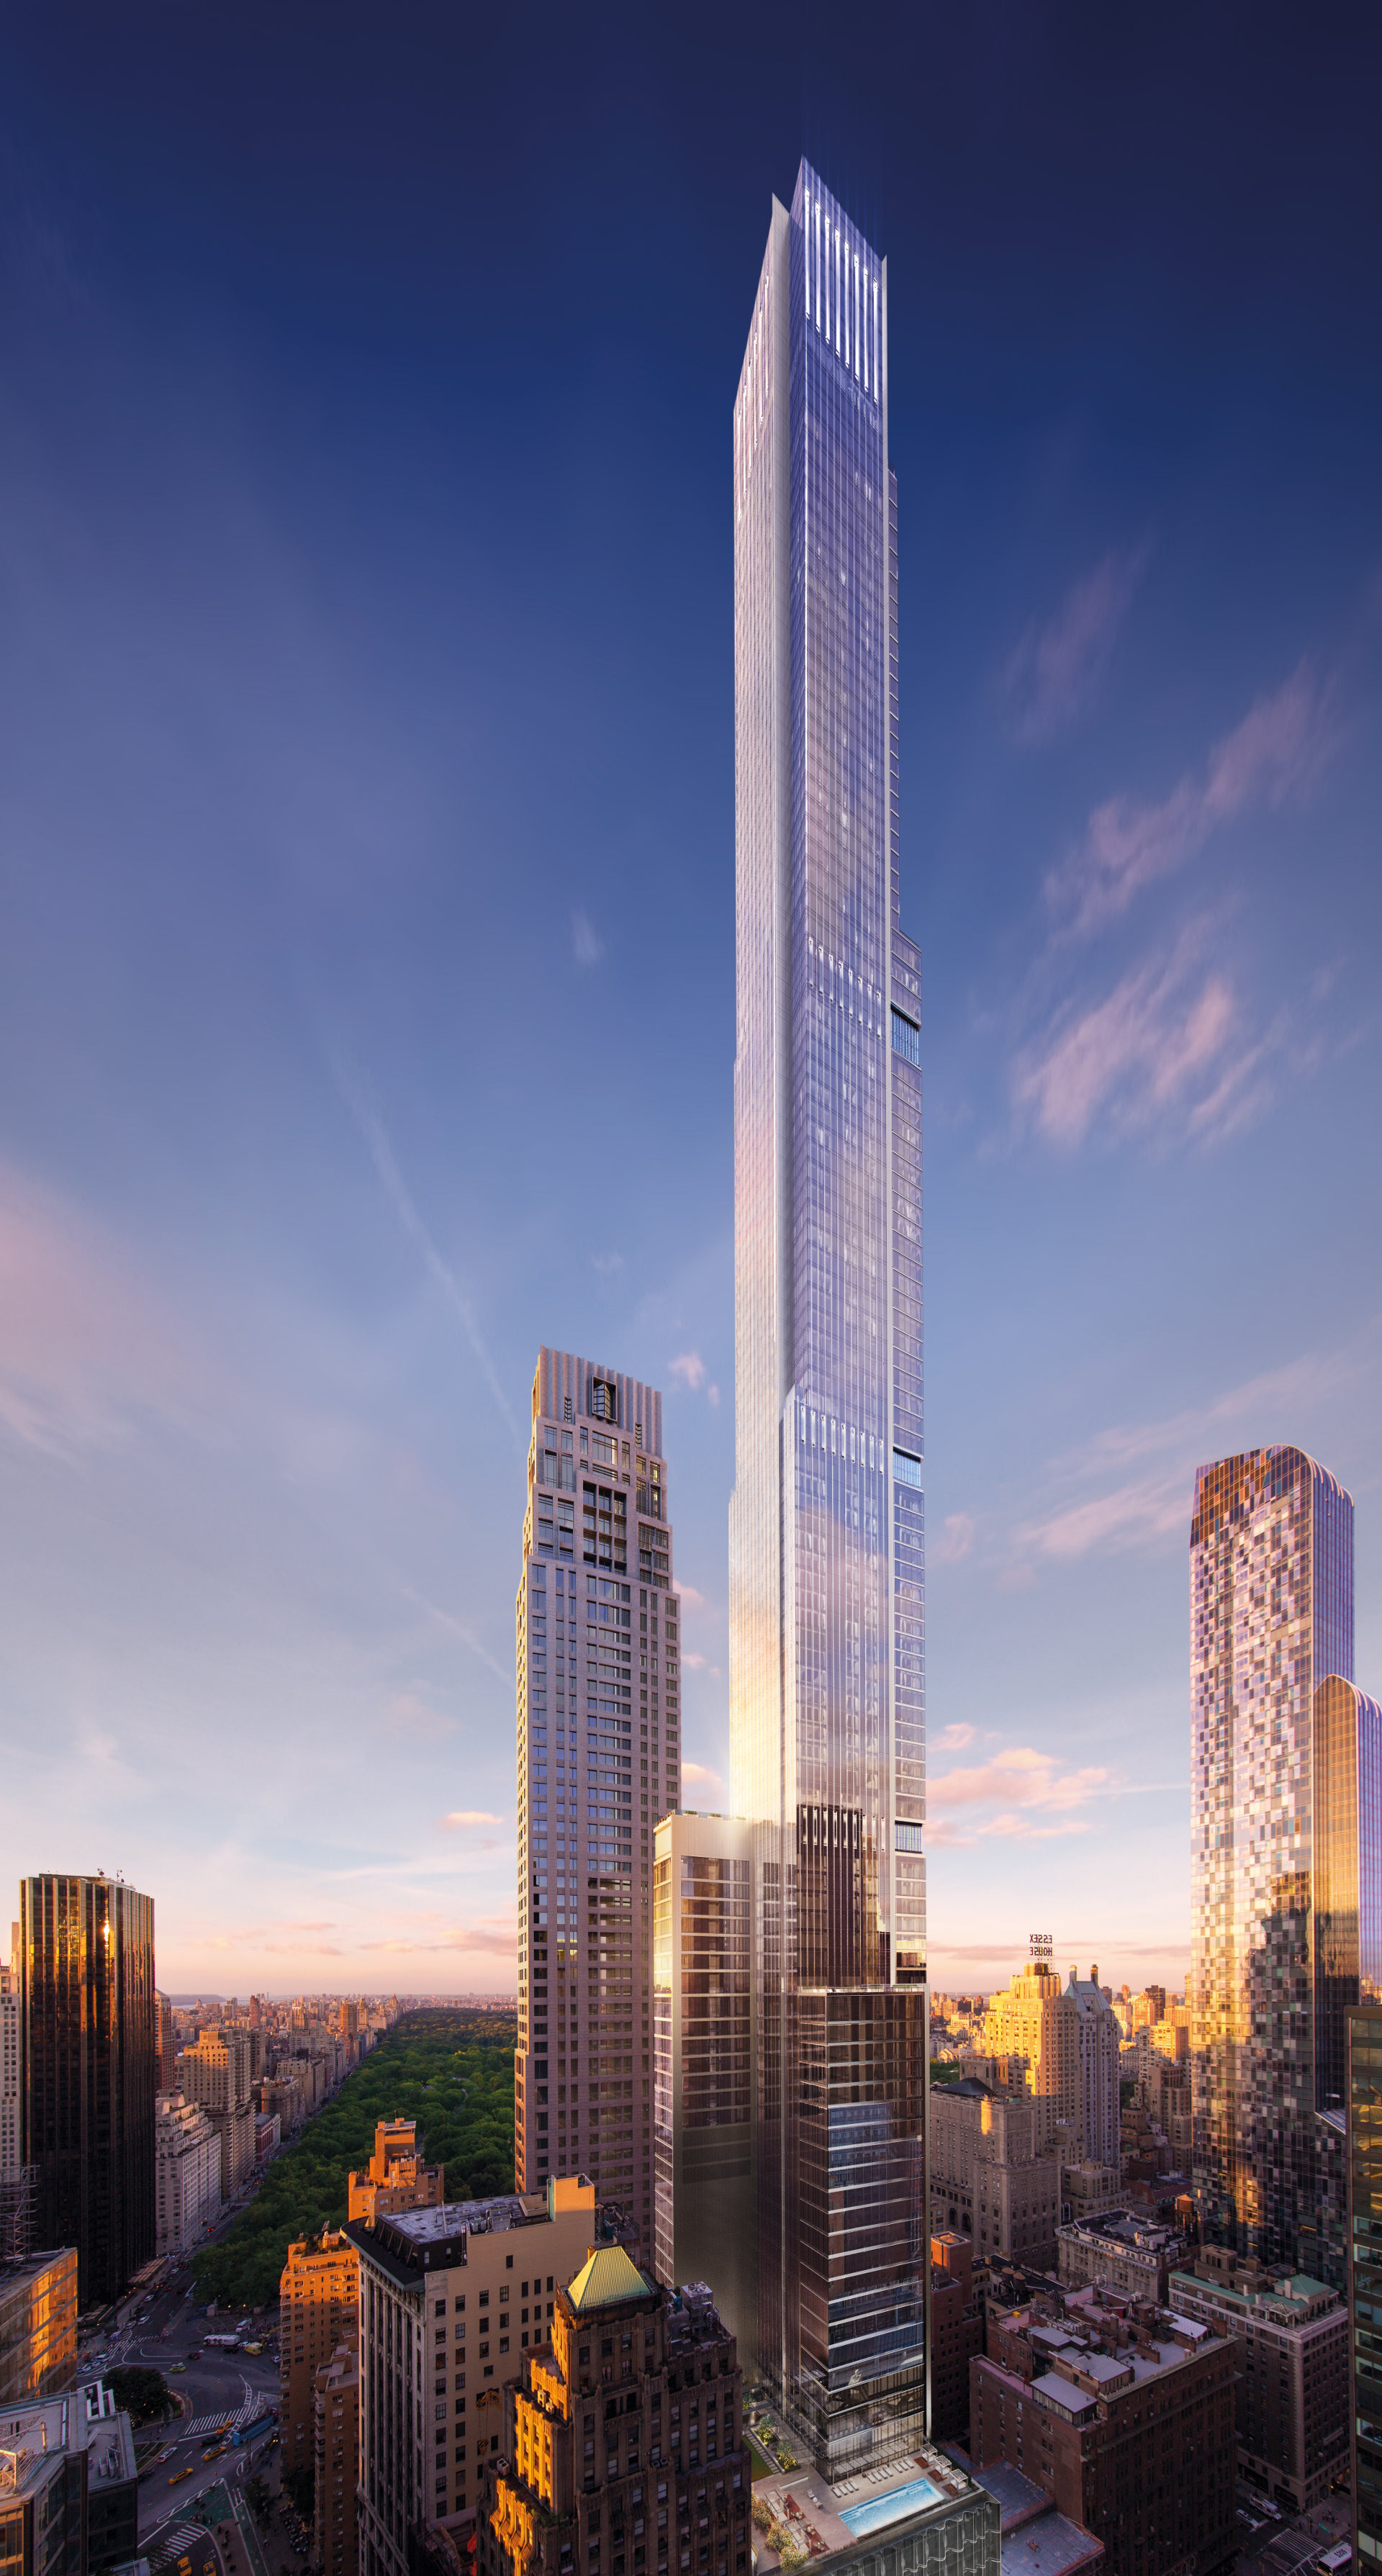 central park tower surpasses 432 park avenue to be e the tallest residential building in the western hemisphere